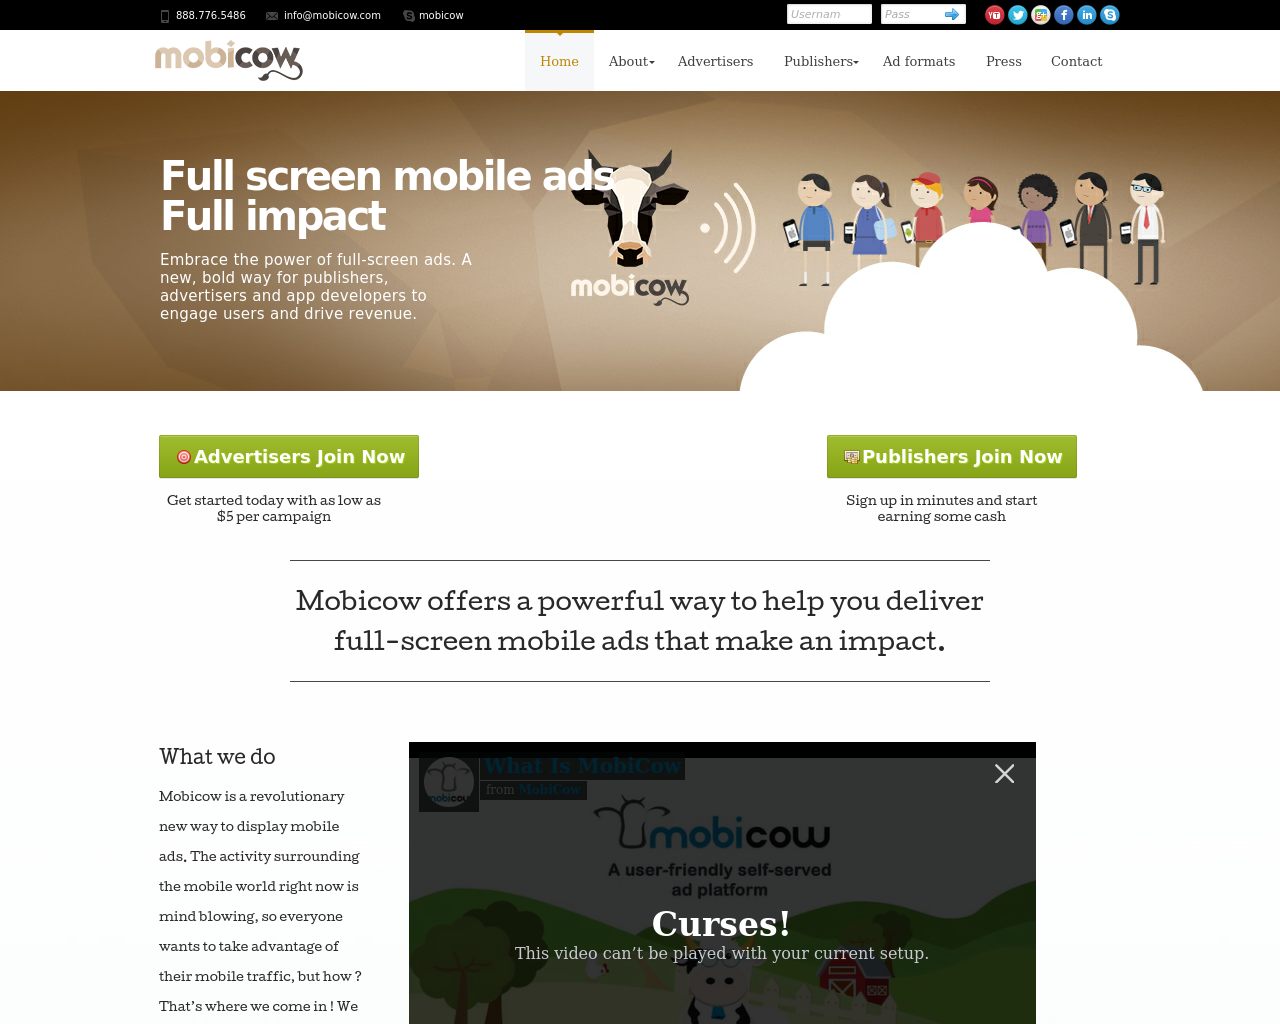 Mobicow-Advertising-Reviews-Pricing